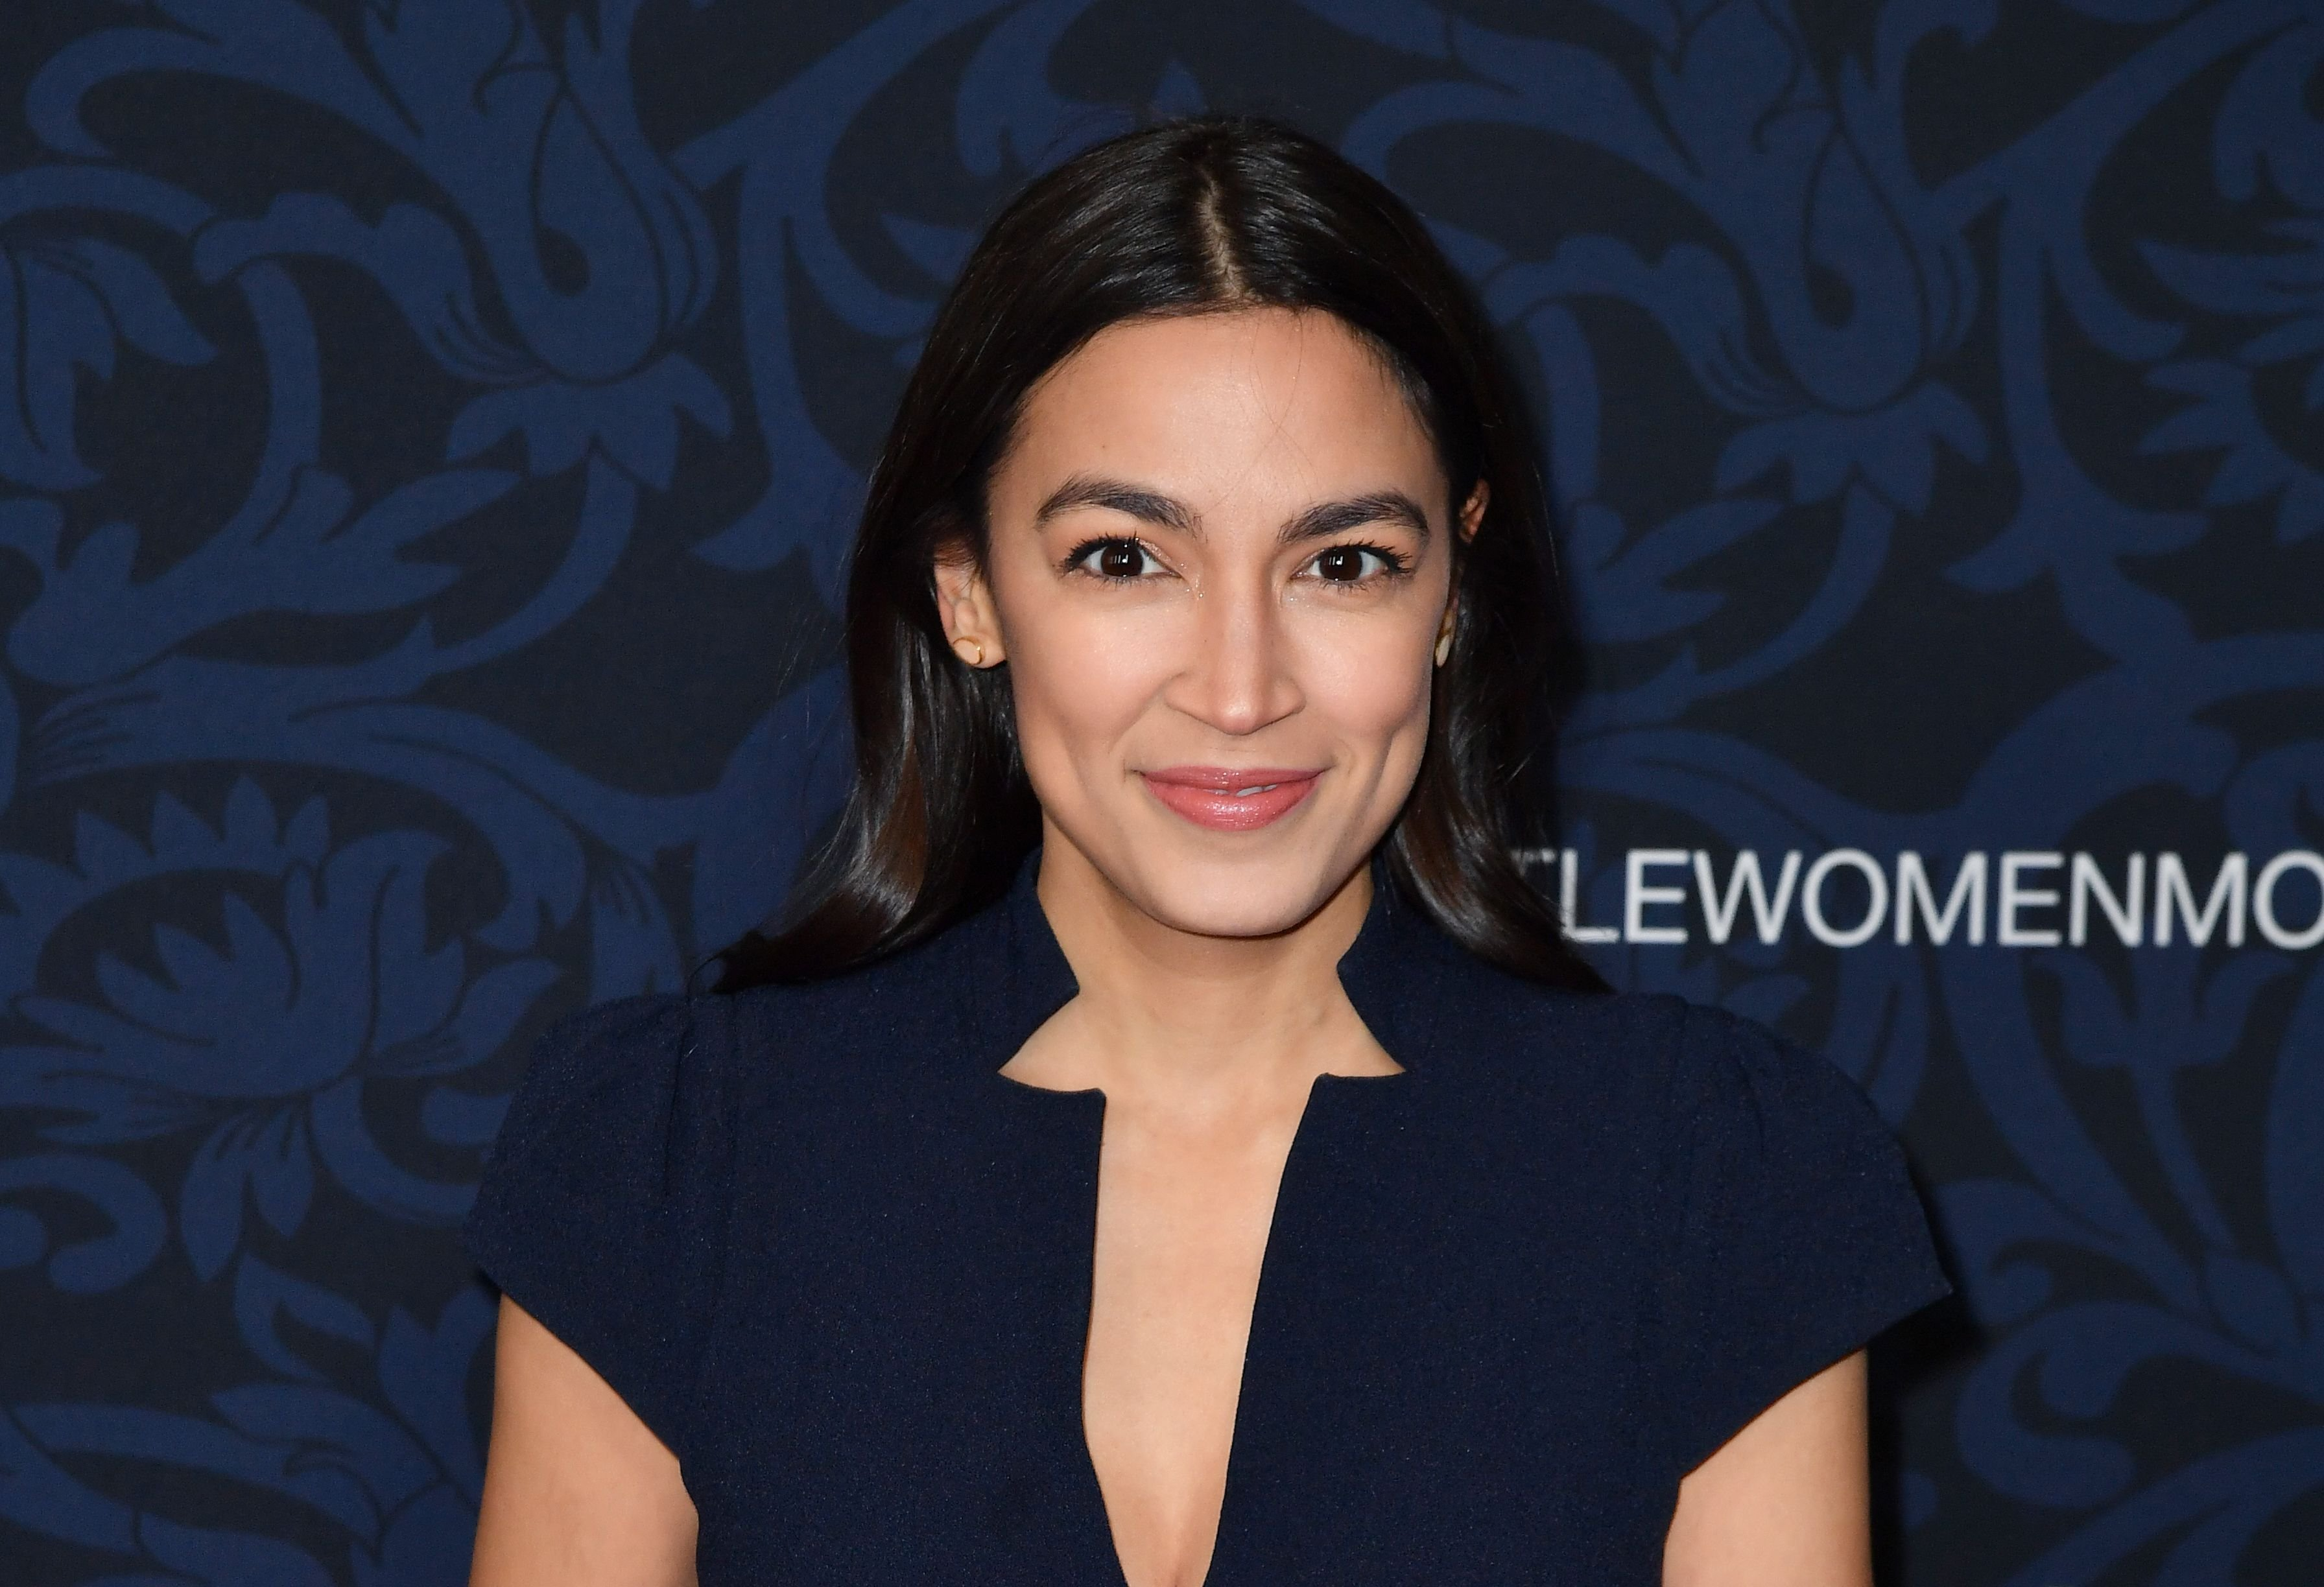 """US Representative Alexandria Ocasio-Cortez arrives for """"Little Women"""" world premiere at the Museum of Modern Art in New York on December 7, 2019. (Photo by ANGELA WEISS / AFP)"""